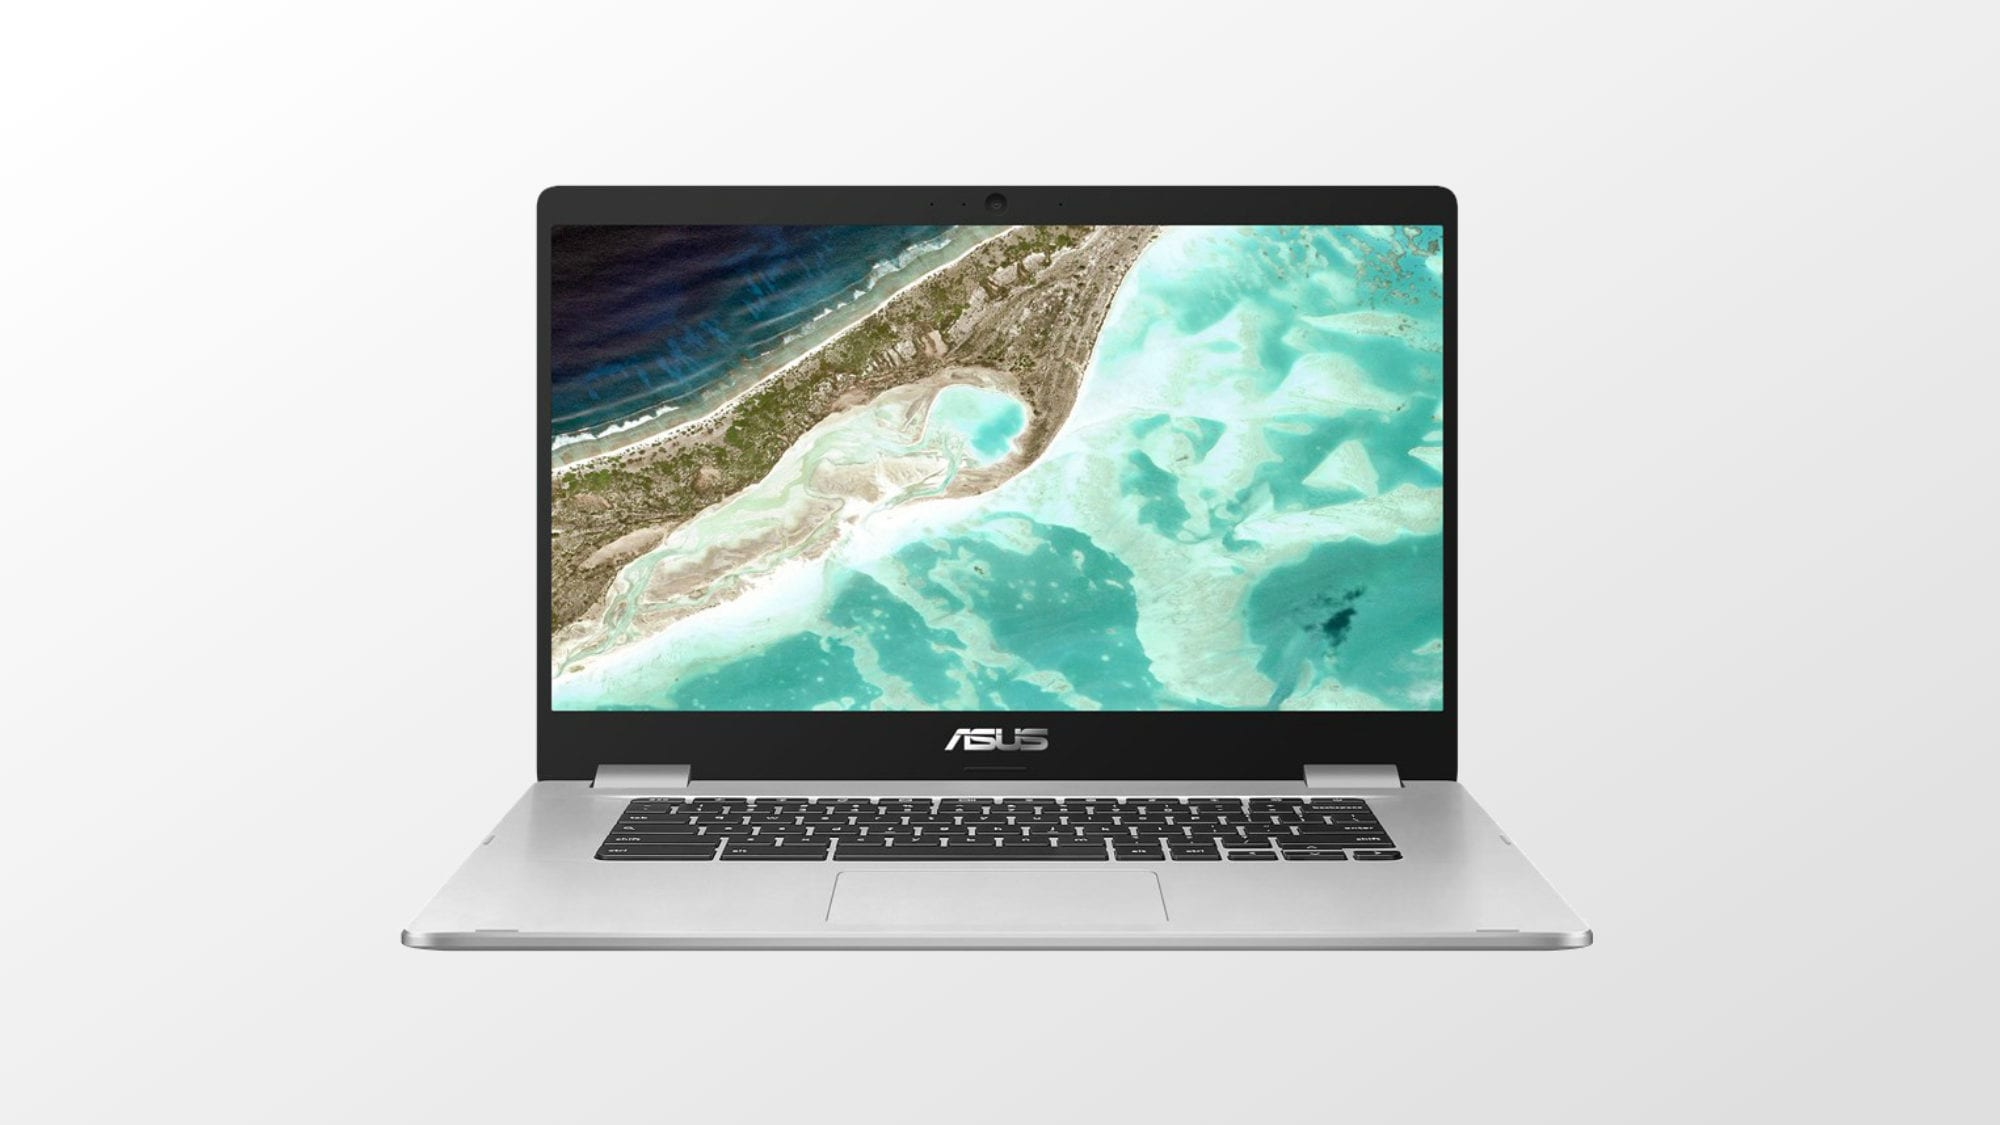 Grab The 15.6″ ASUS Chromebook C523 For $210